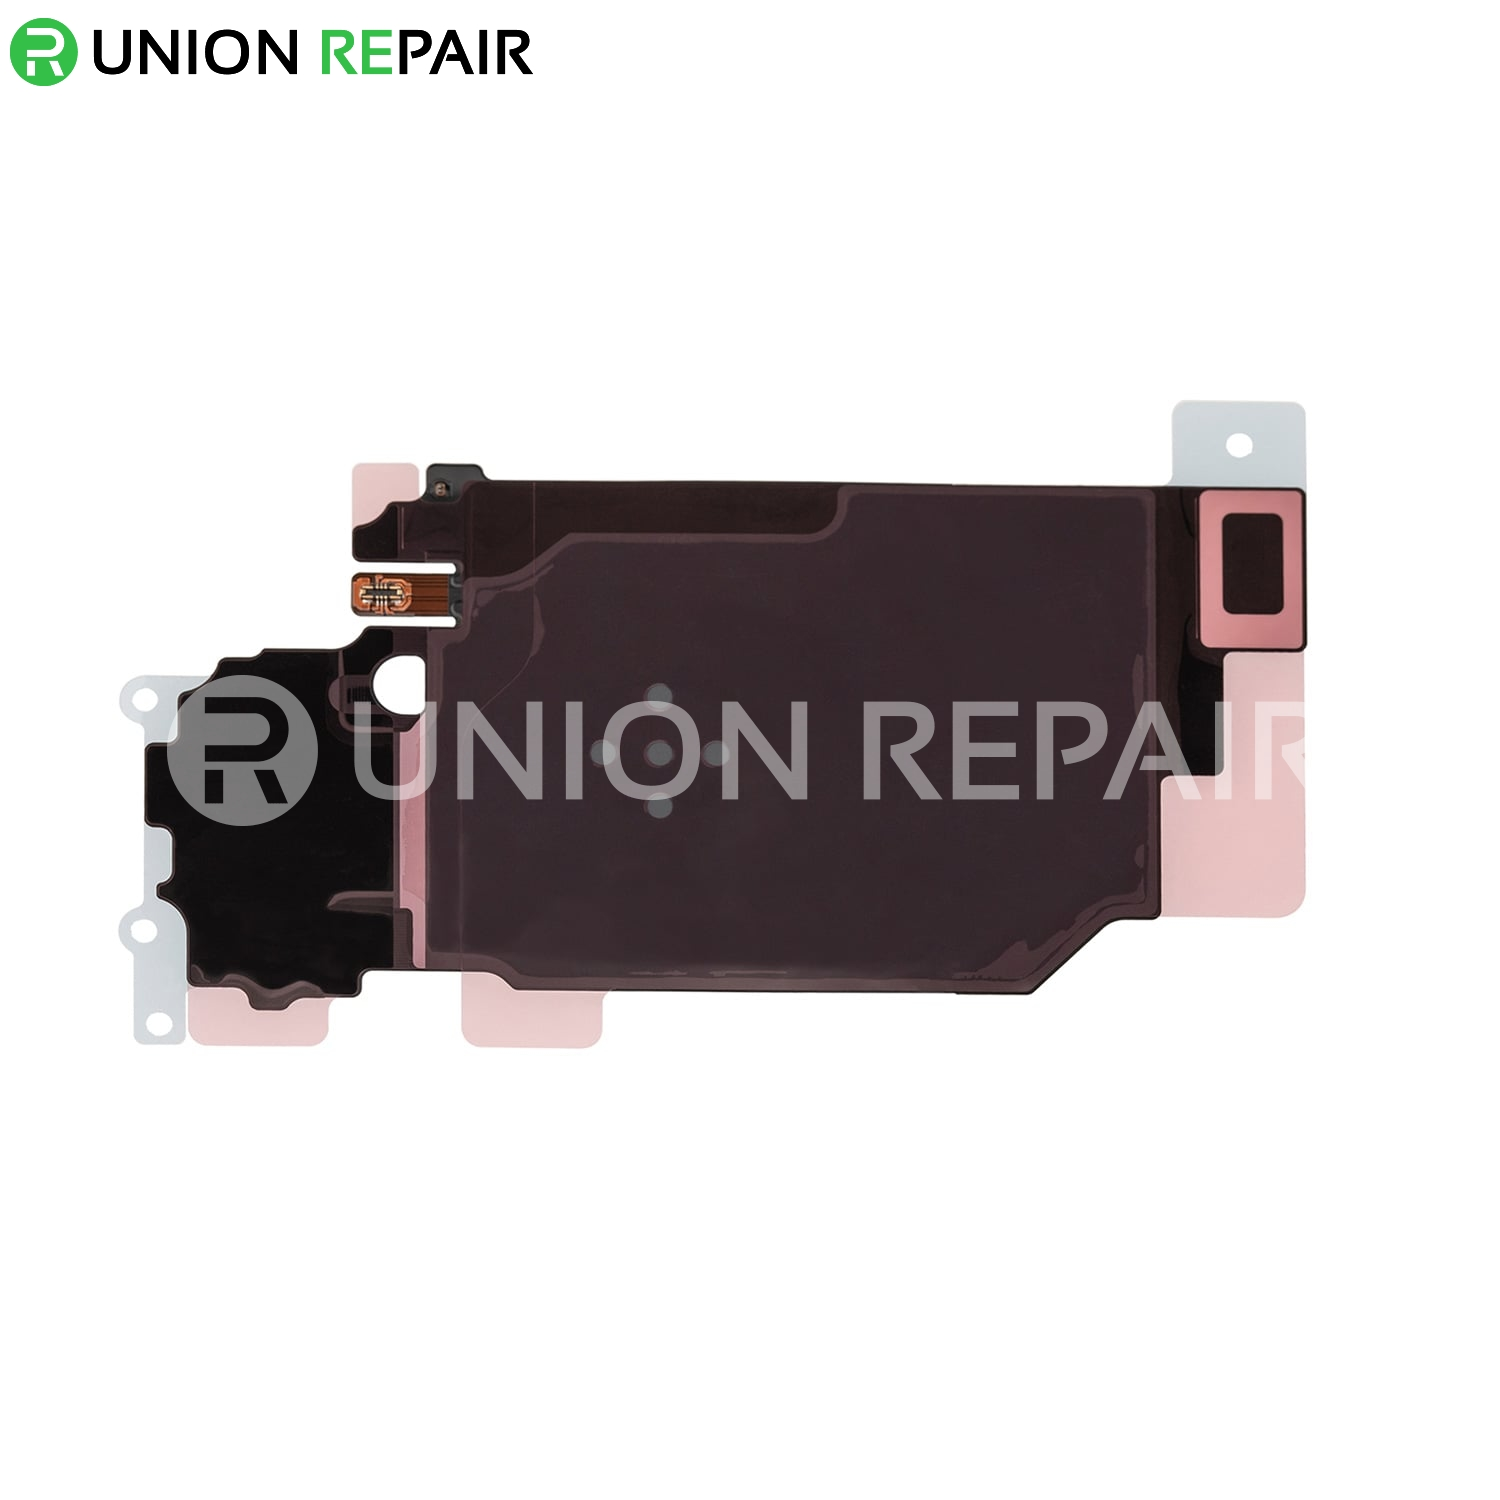 Replacement for Samsung Galaxy S21 Wireless NFC Charging Model